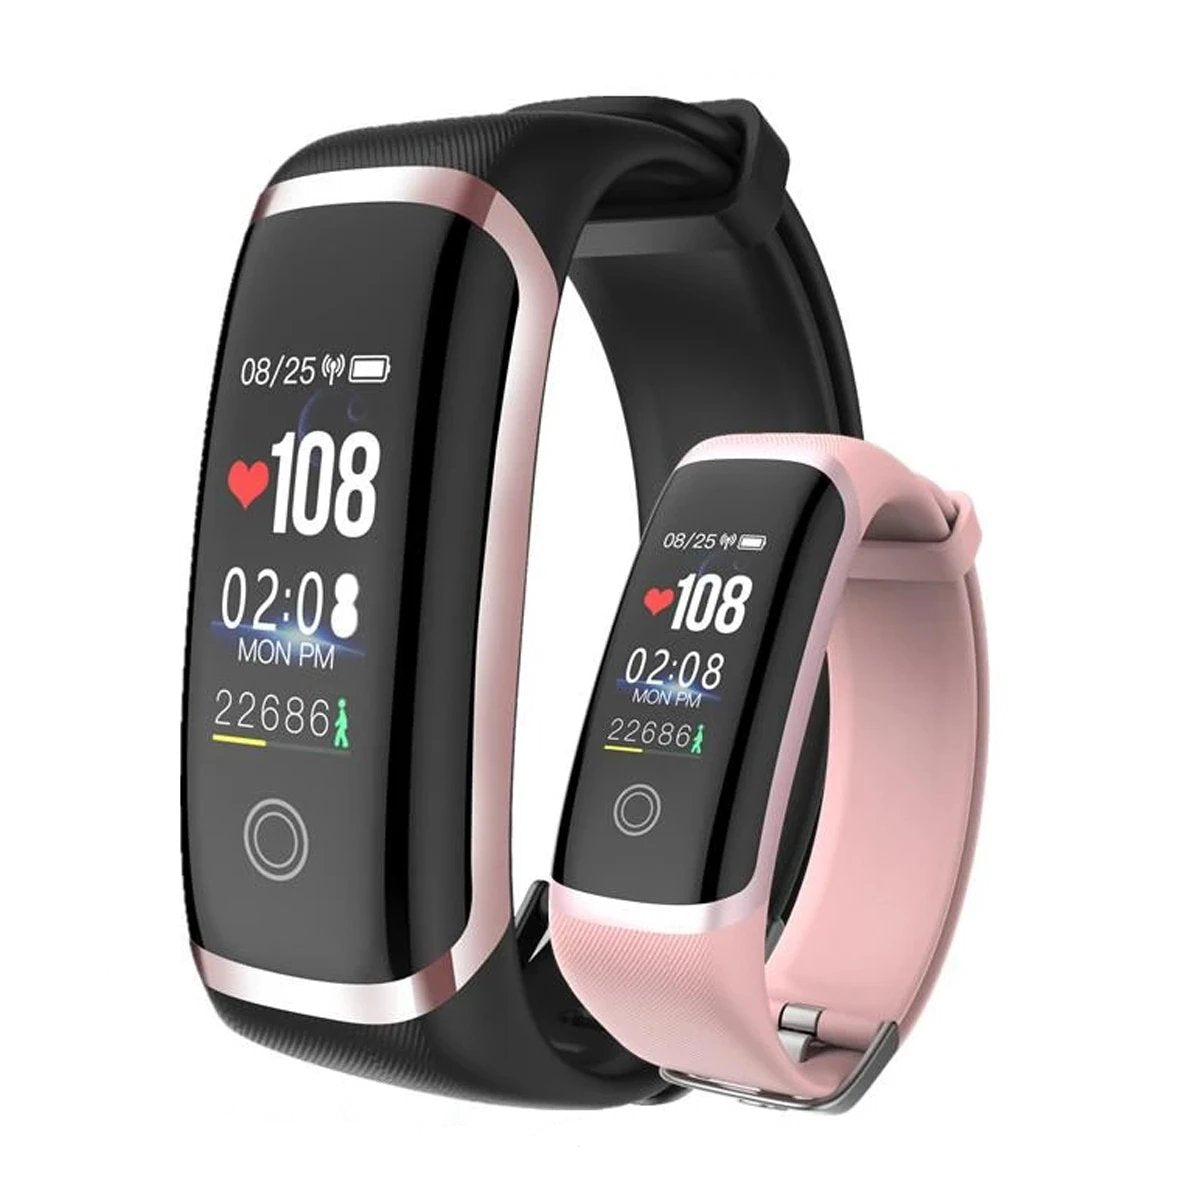 Smart Fitness Bracelet with Sleep & Heart Rate Monitor Compatible with Android, iOS